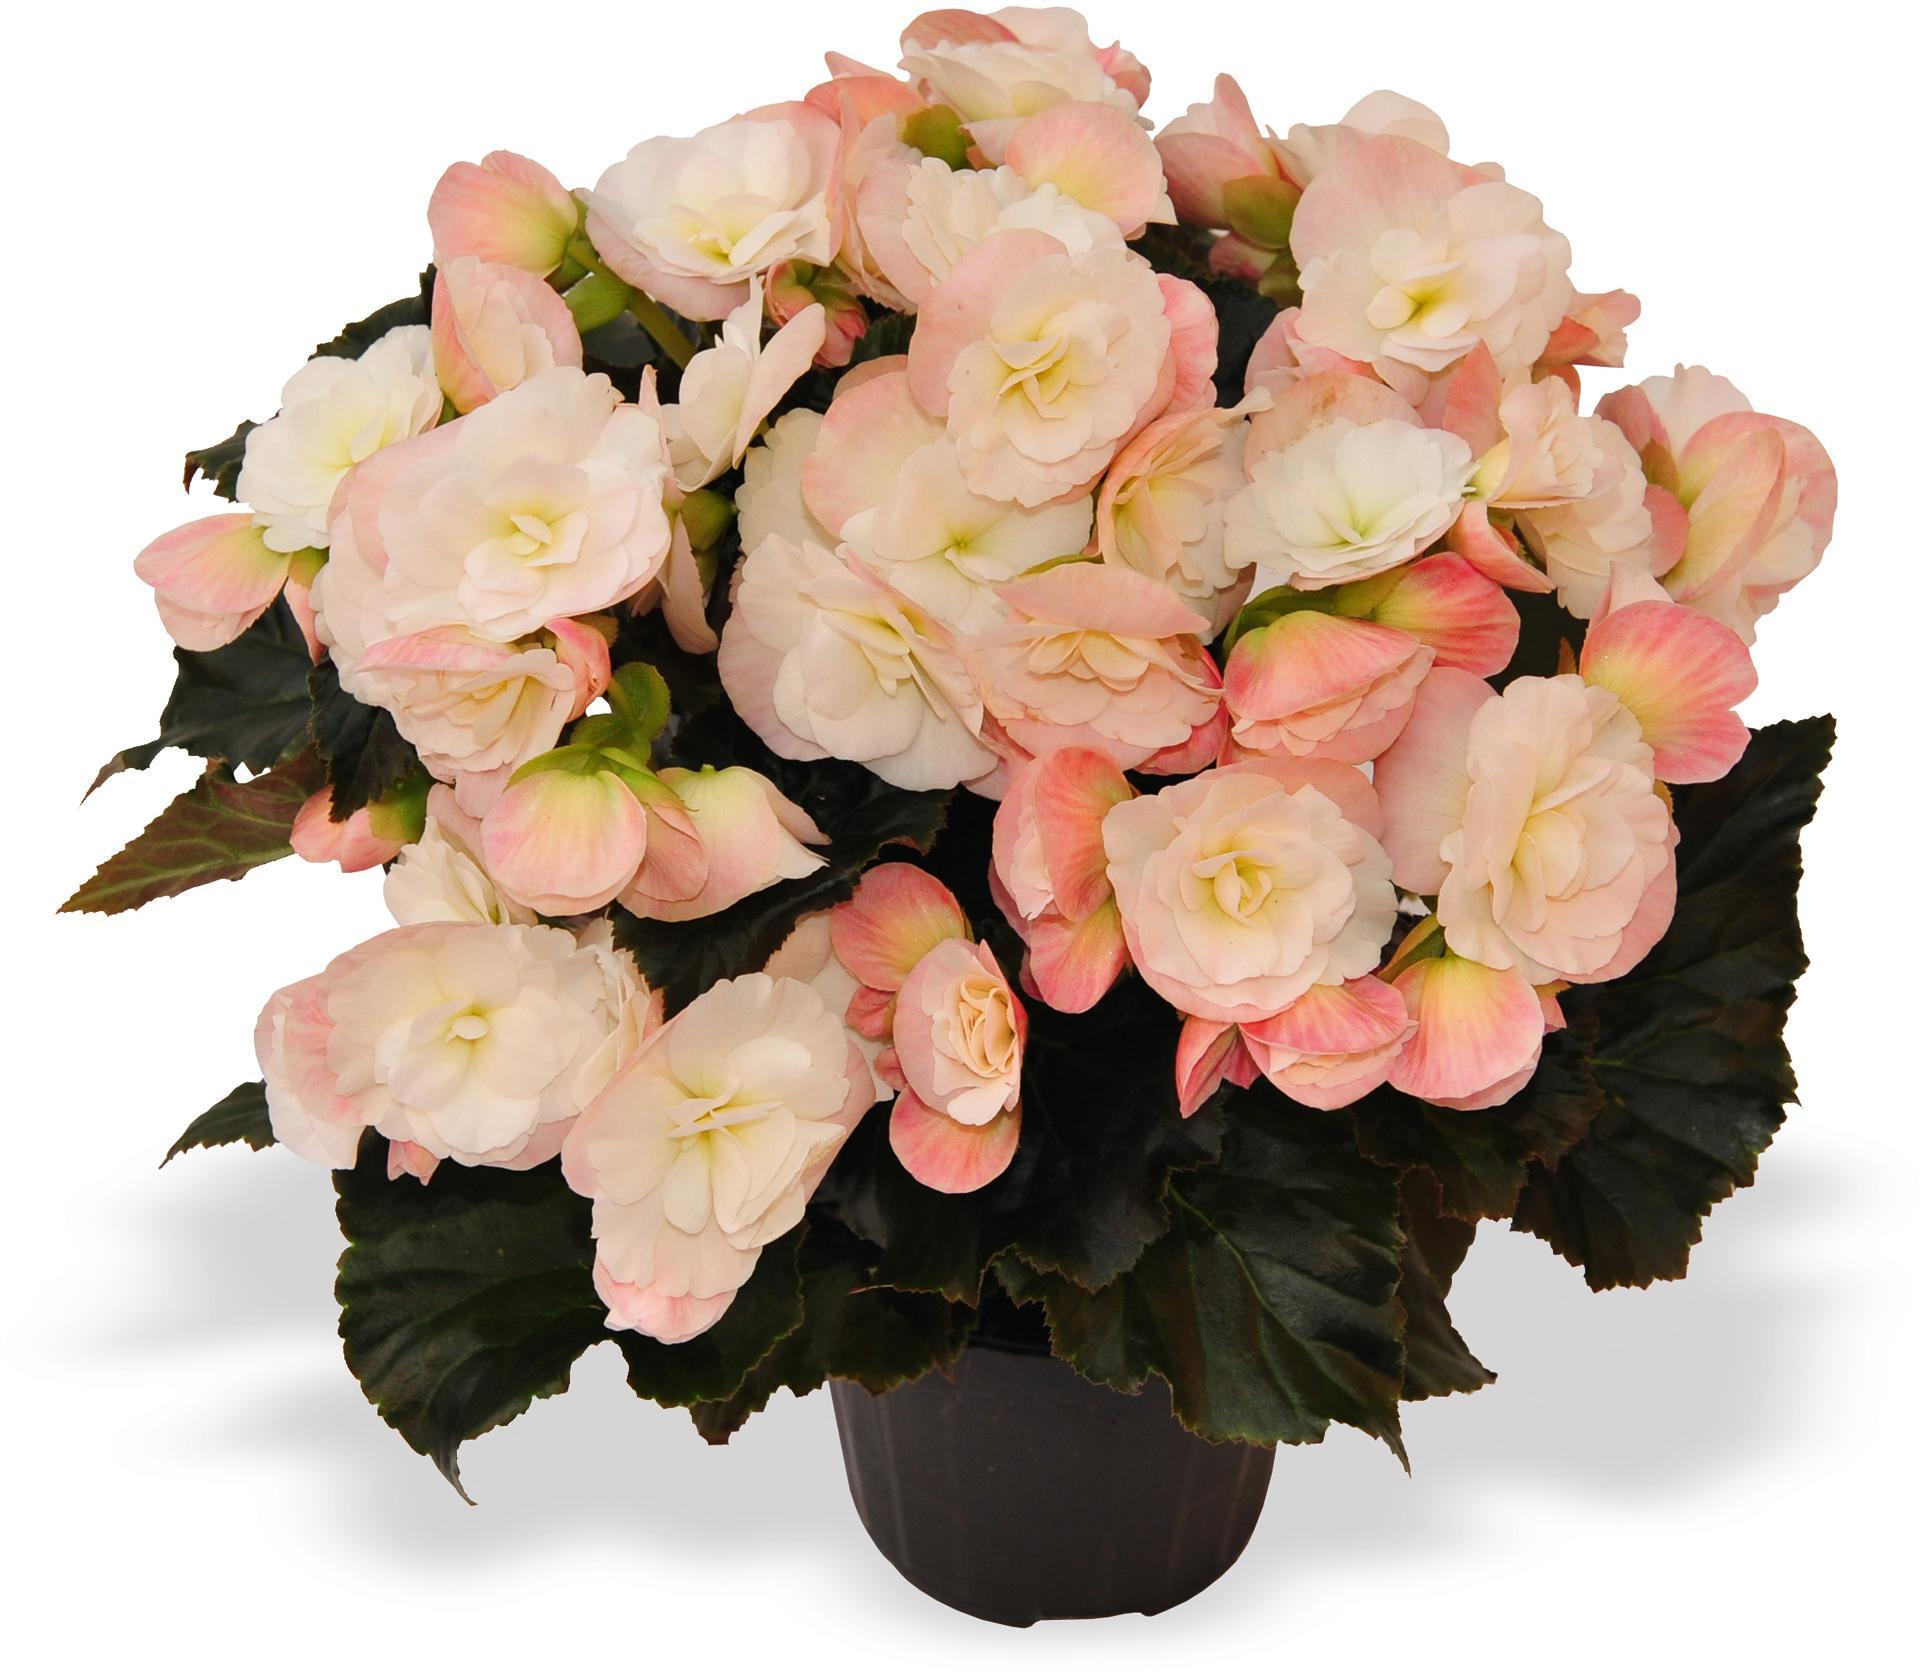 Begonia Red Fox 'Dragon White'